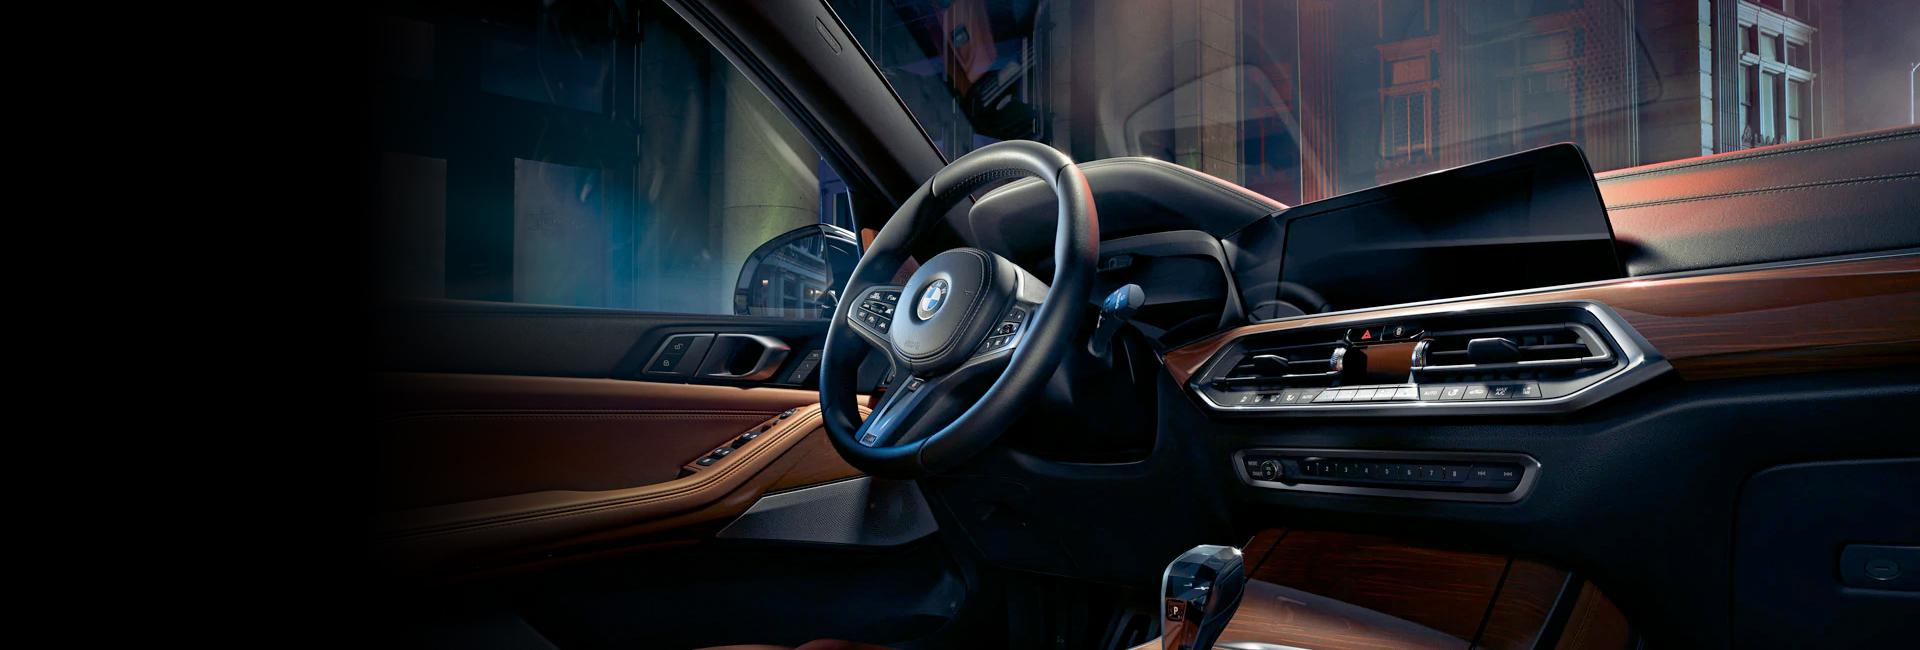 Front interior view of the 2021 BMW X5